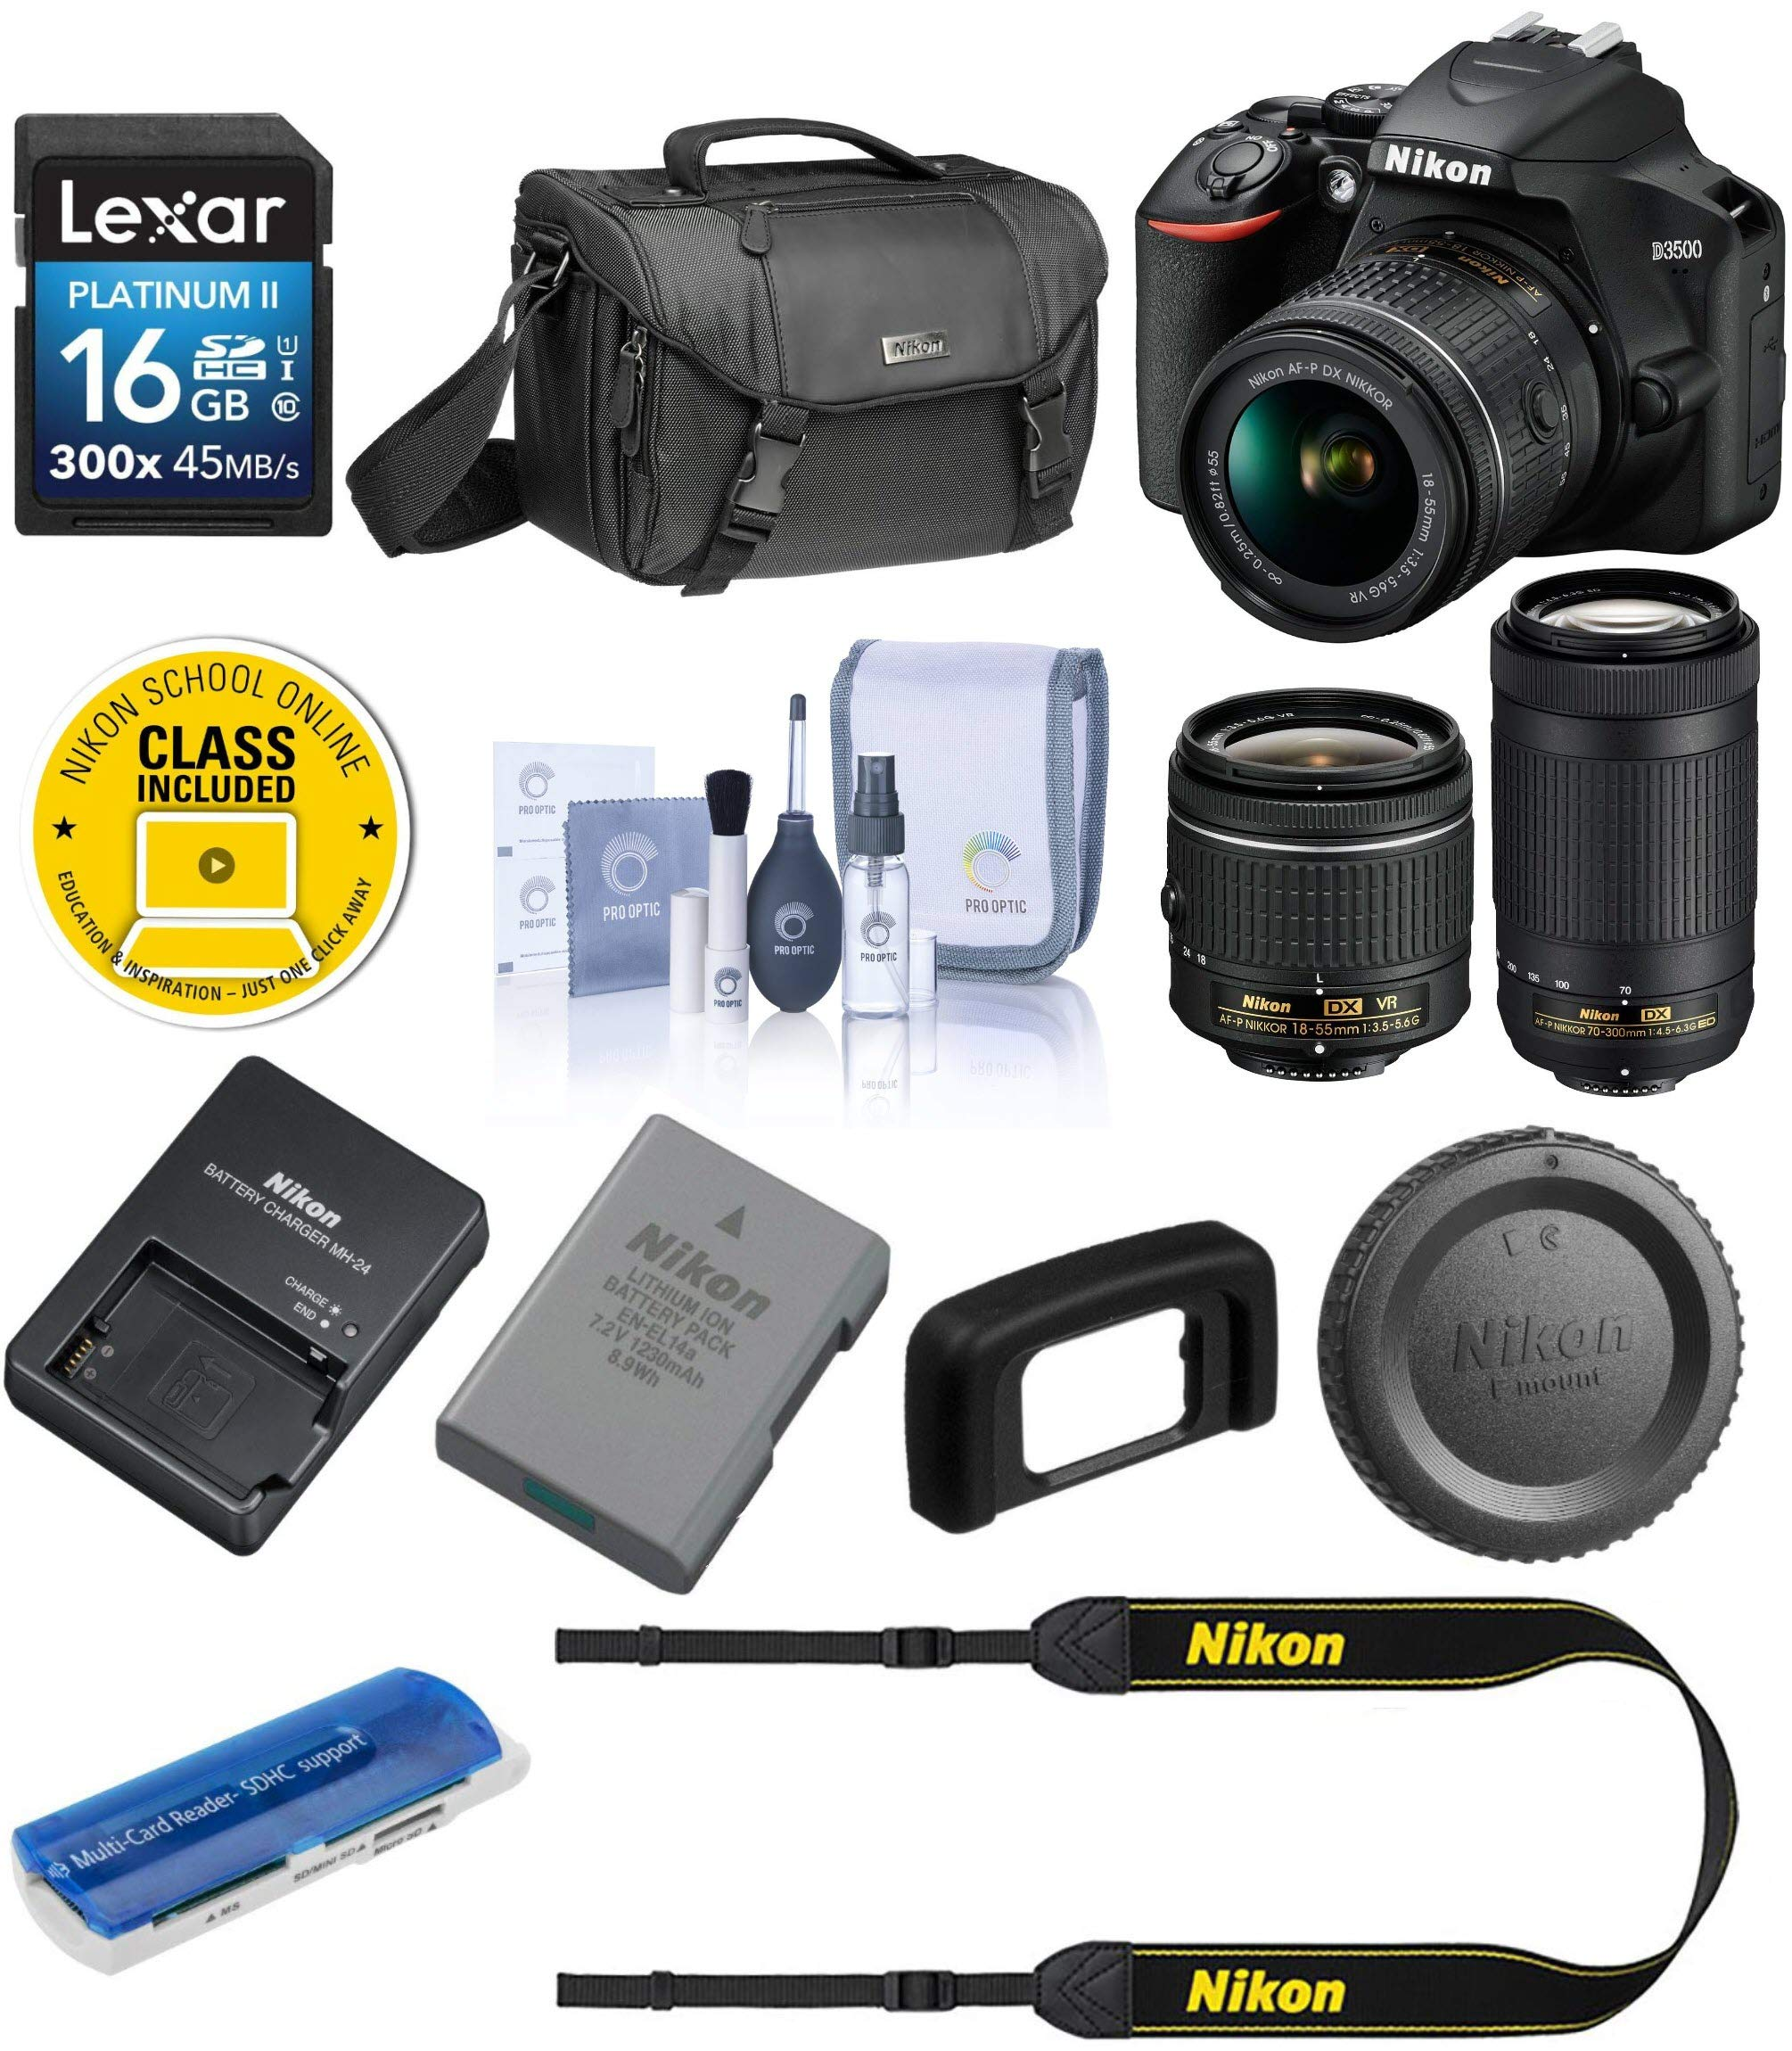 Nikon D3500 24MP DSLR Camera with AF-P DX NIKKOR 18-55mm f/3.5-5.6G VR Lens and AF-P DX NIKKOR 70-300mm f/4.5-6.3G ED Lens - Bundle with Camera Case, 16GB SDHC Card, Cleaning Kit, Card Reader by Nikon (Image #1)